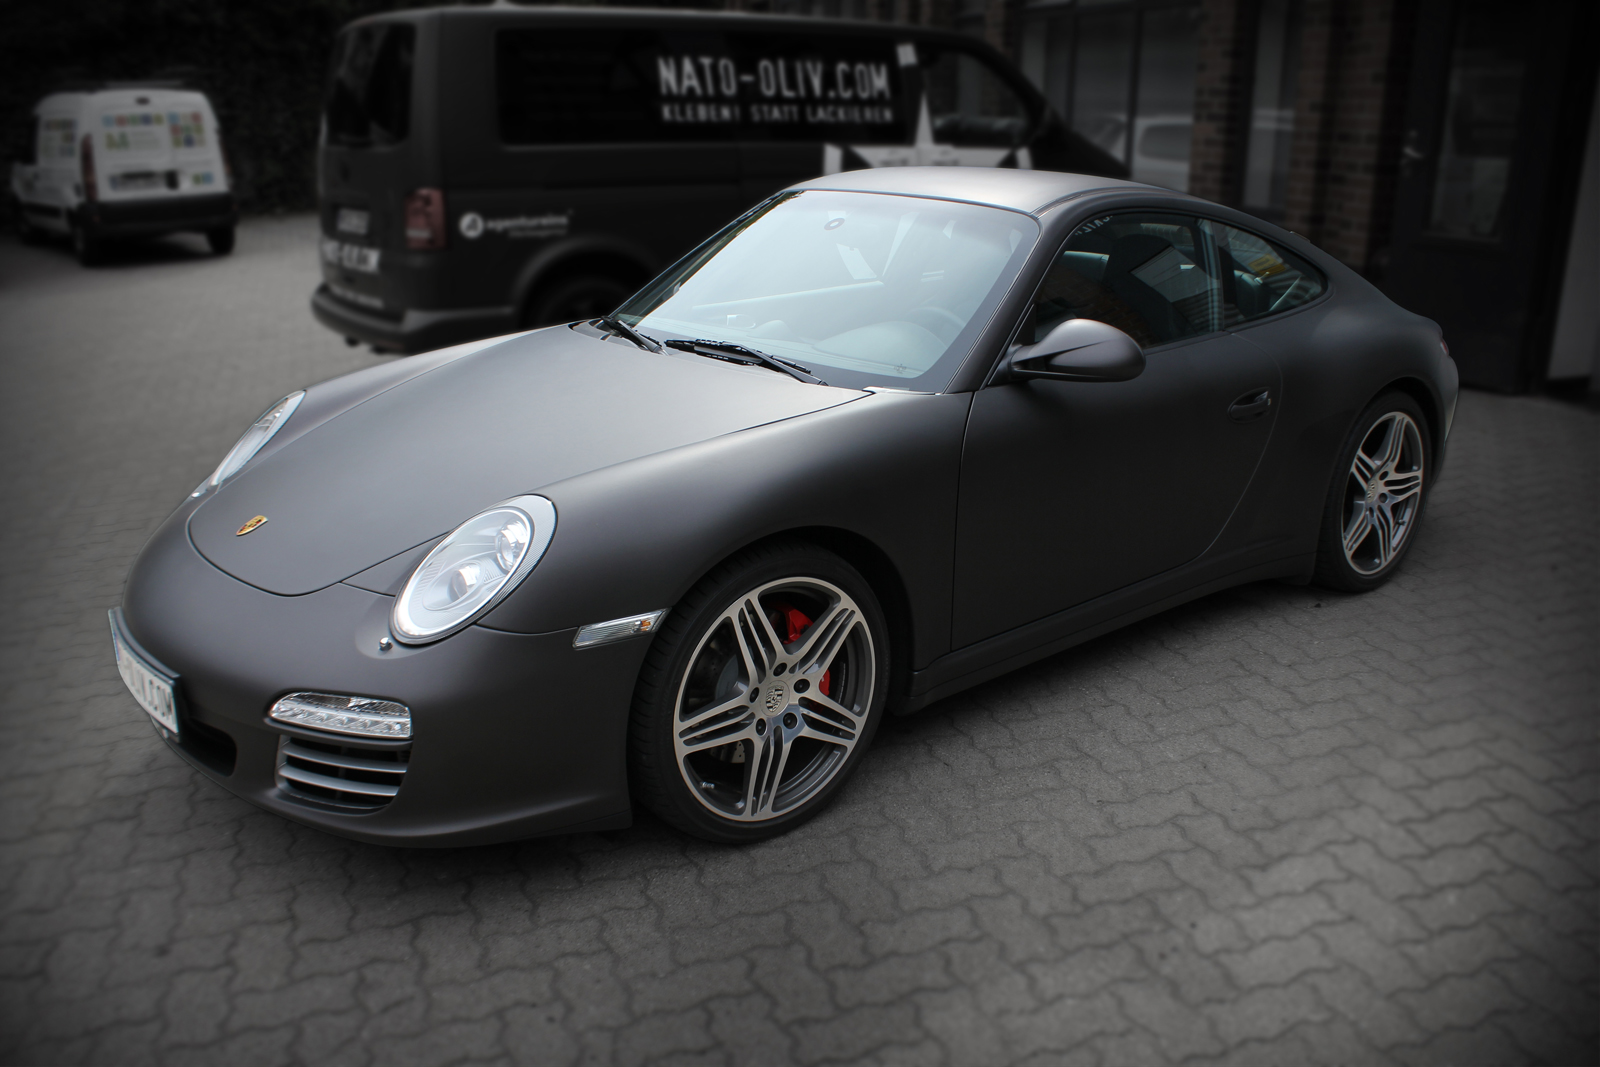 porsche 997 in schwarz braun matt metallic nato. Black Bedroom Furniture Sets. Home Design Ideas